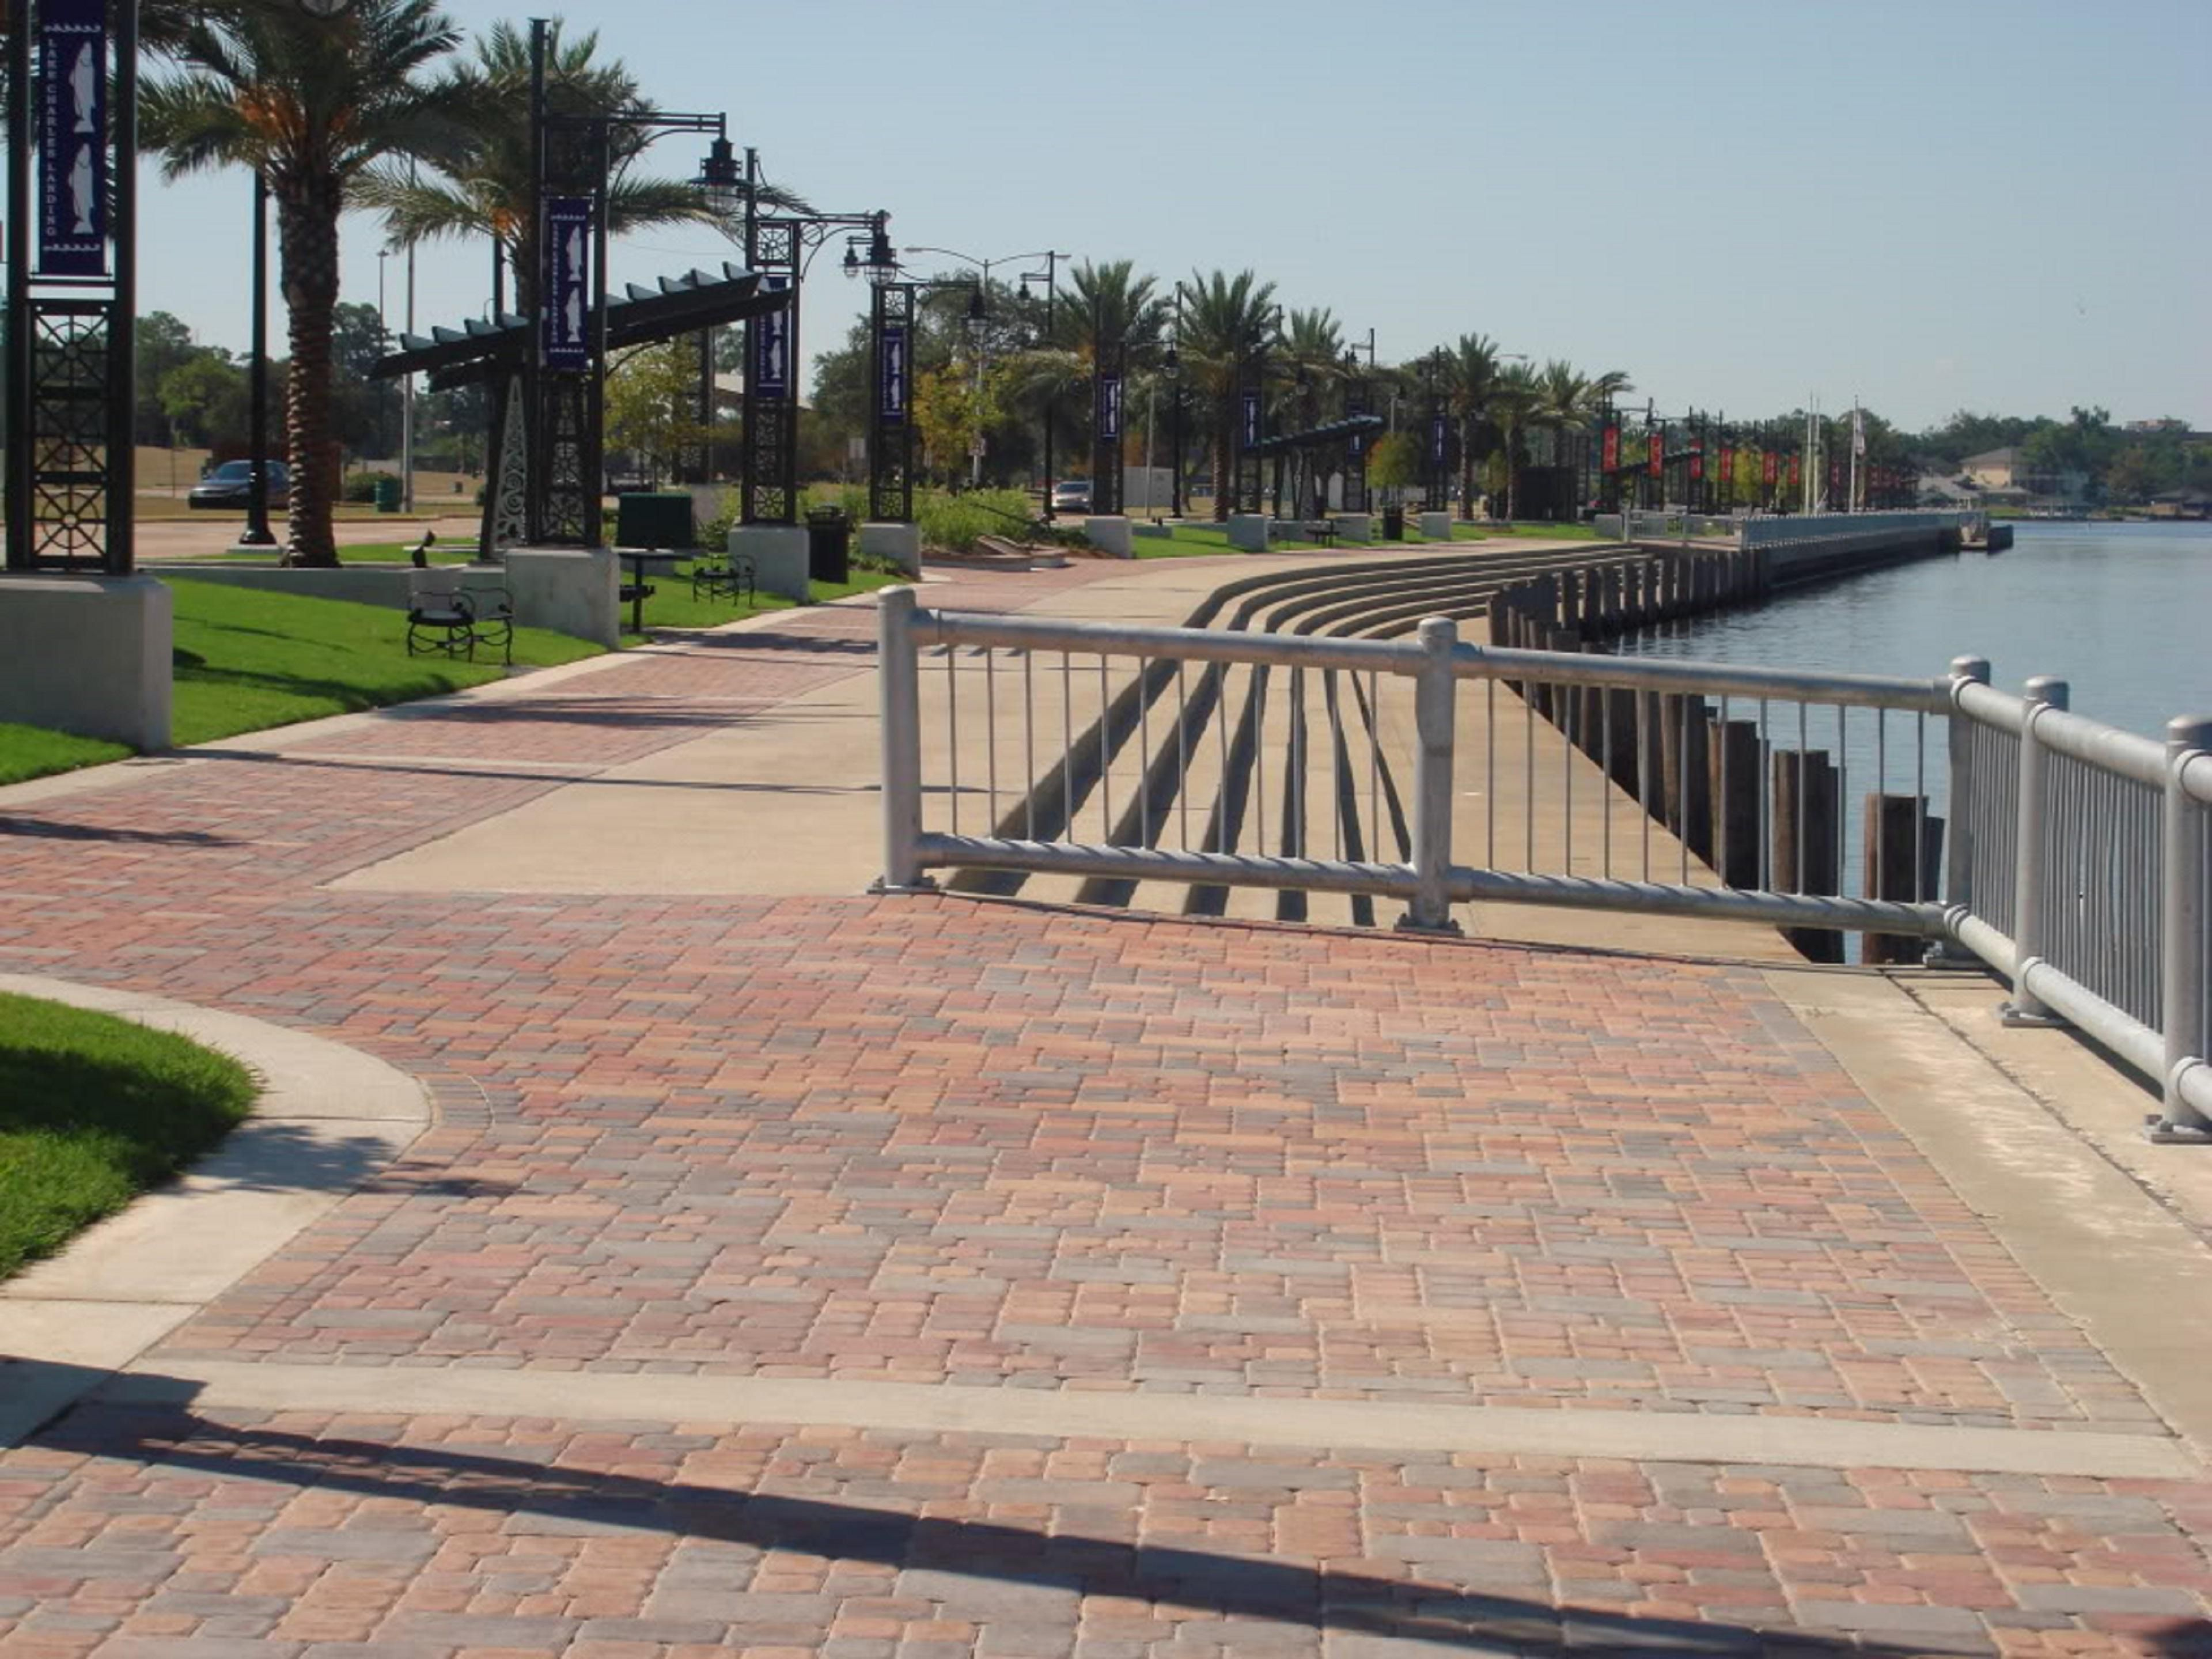 Lakefront boardwalk